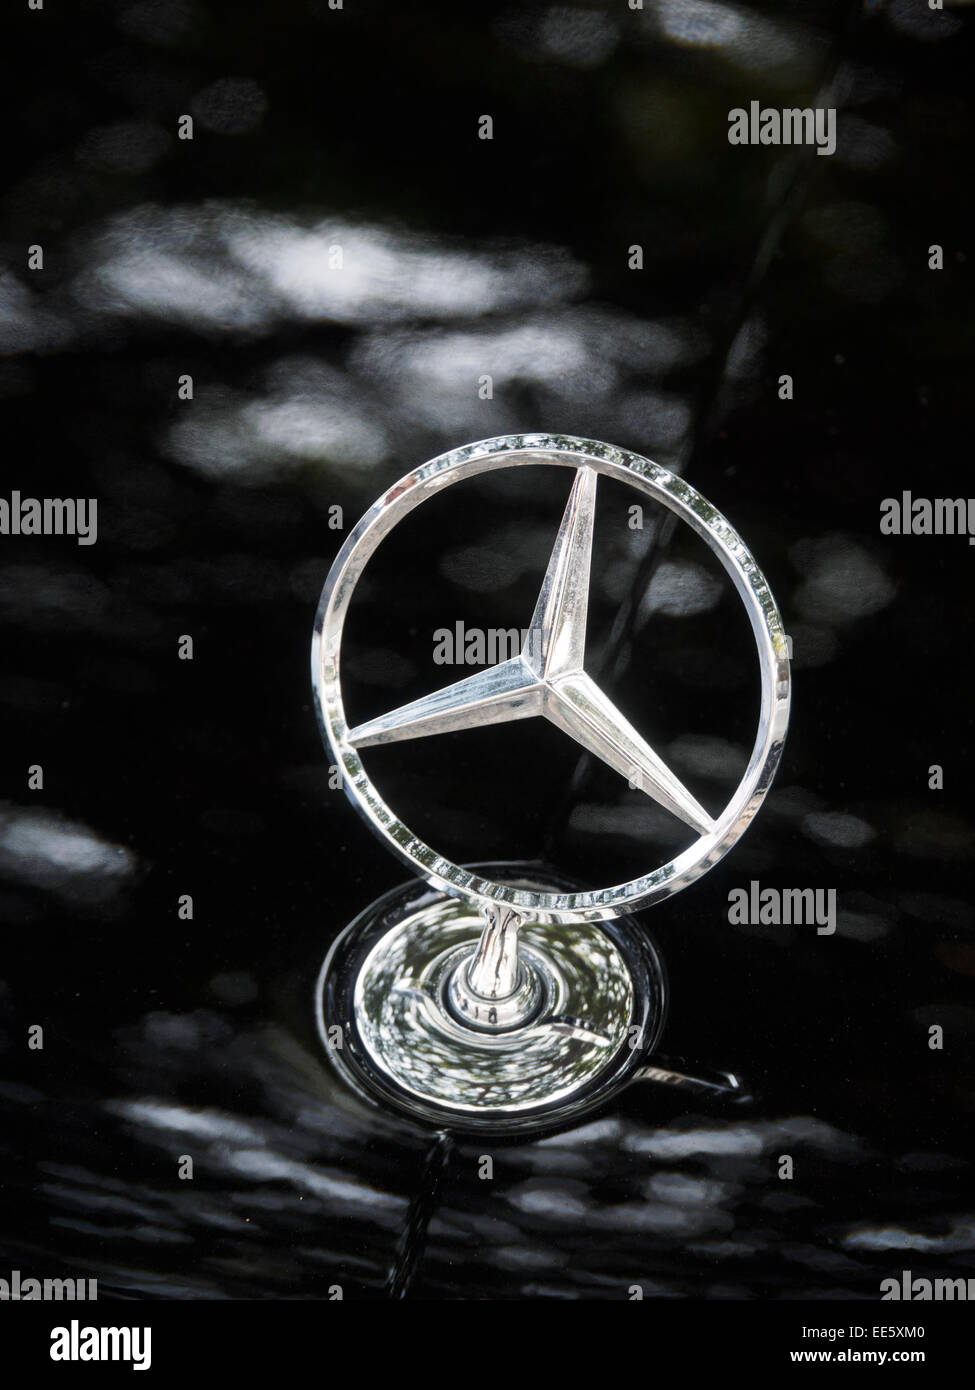 Symbol Mercedes Benz Stock Photos Symbol Mercedes Benz Stock